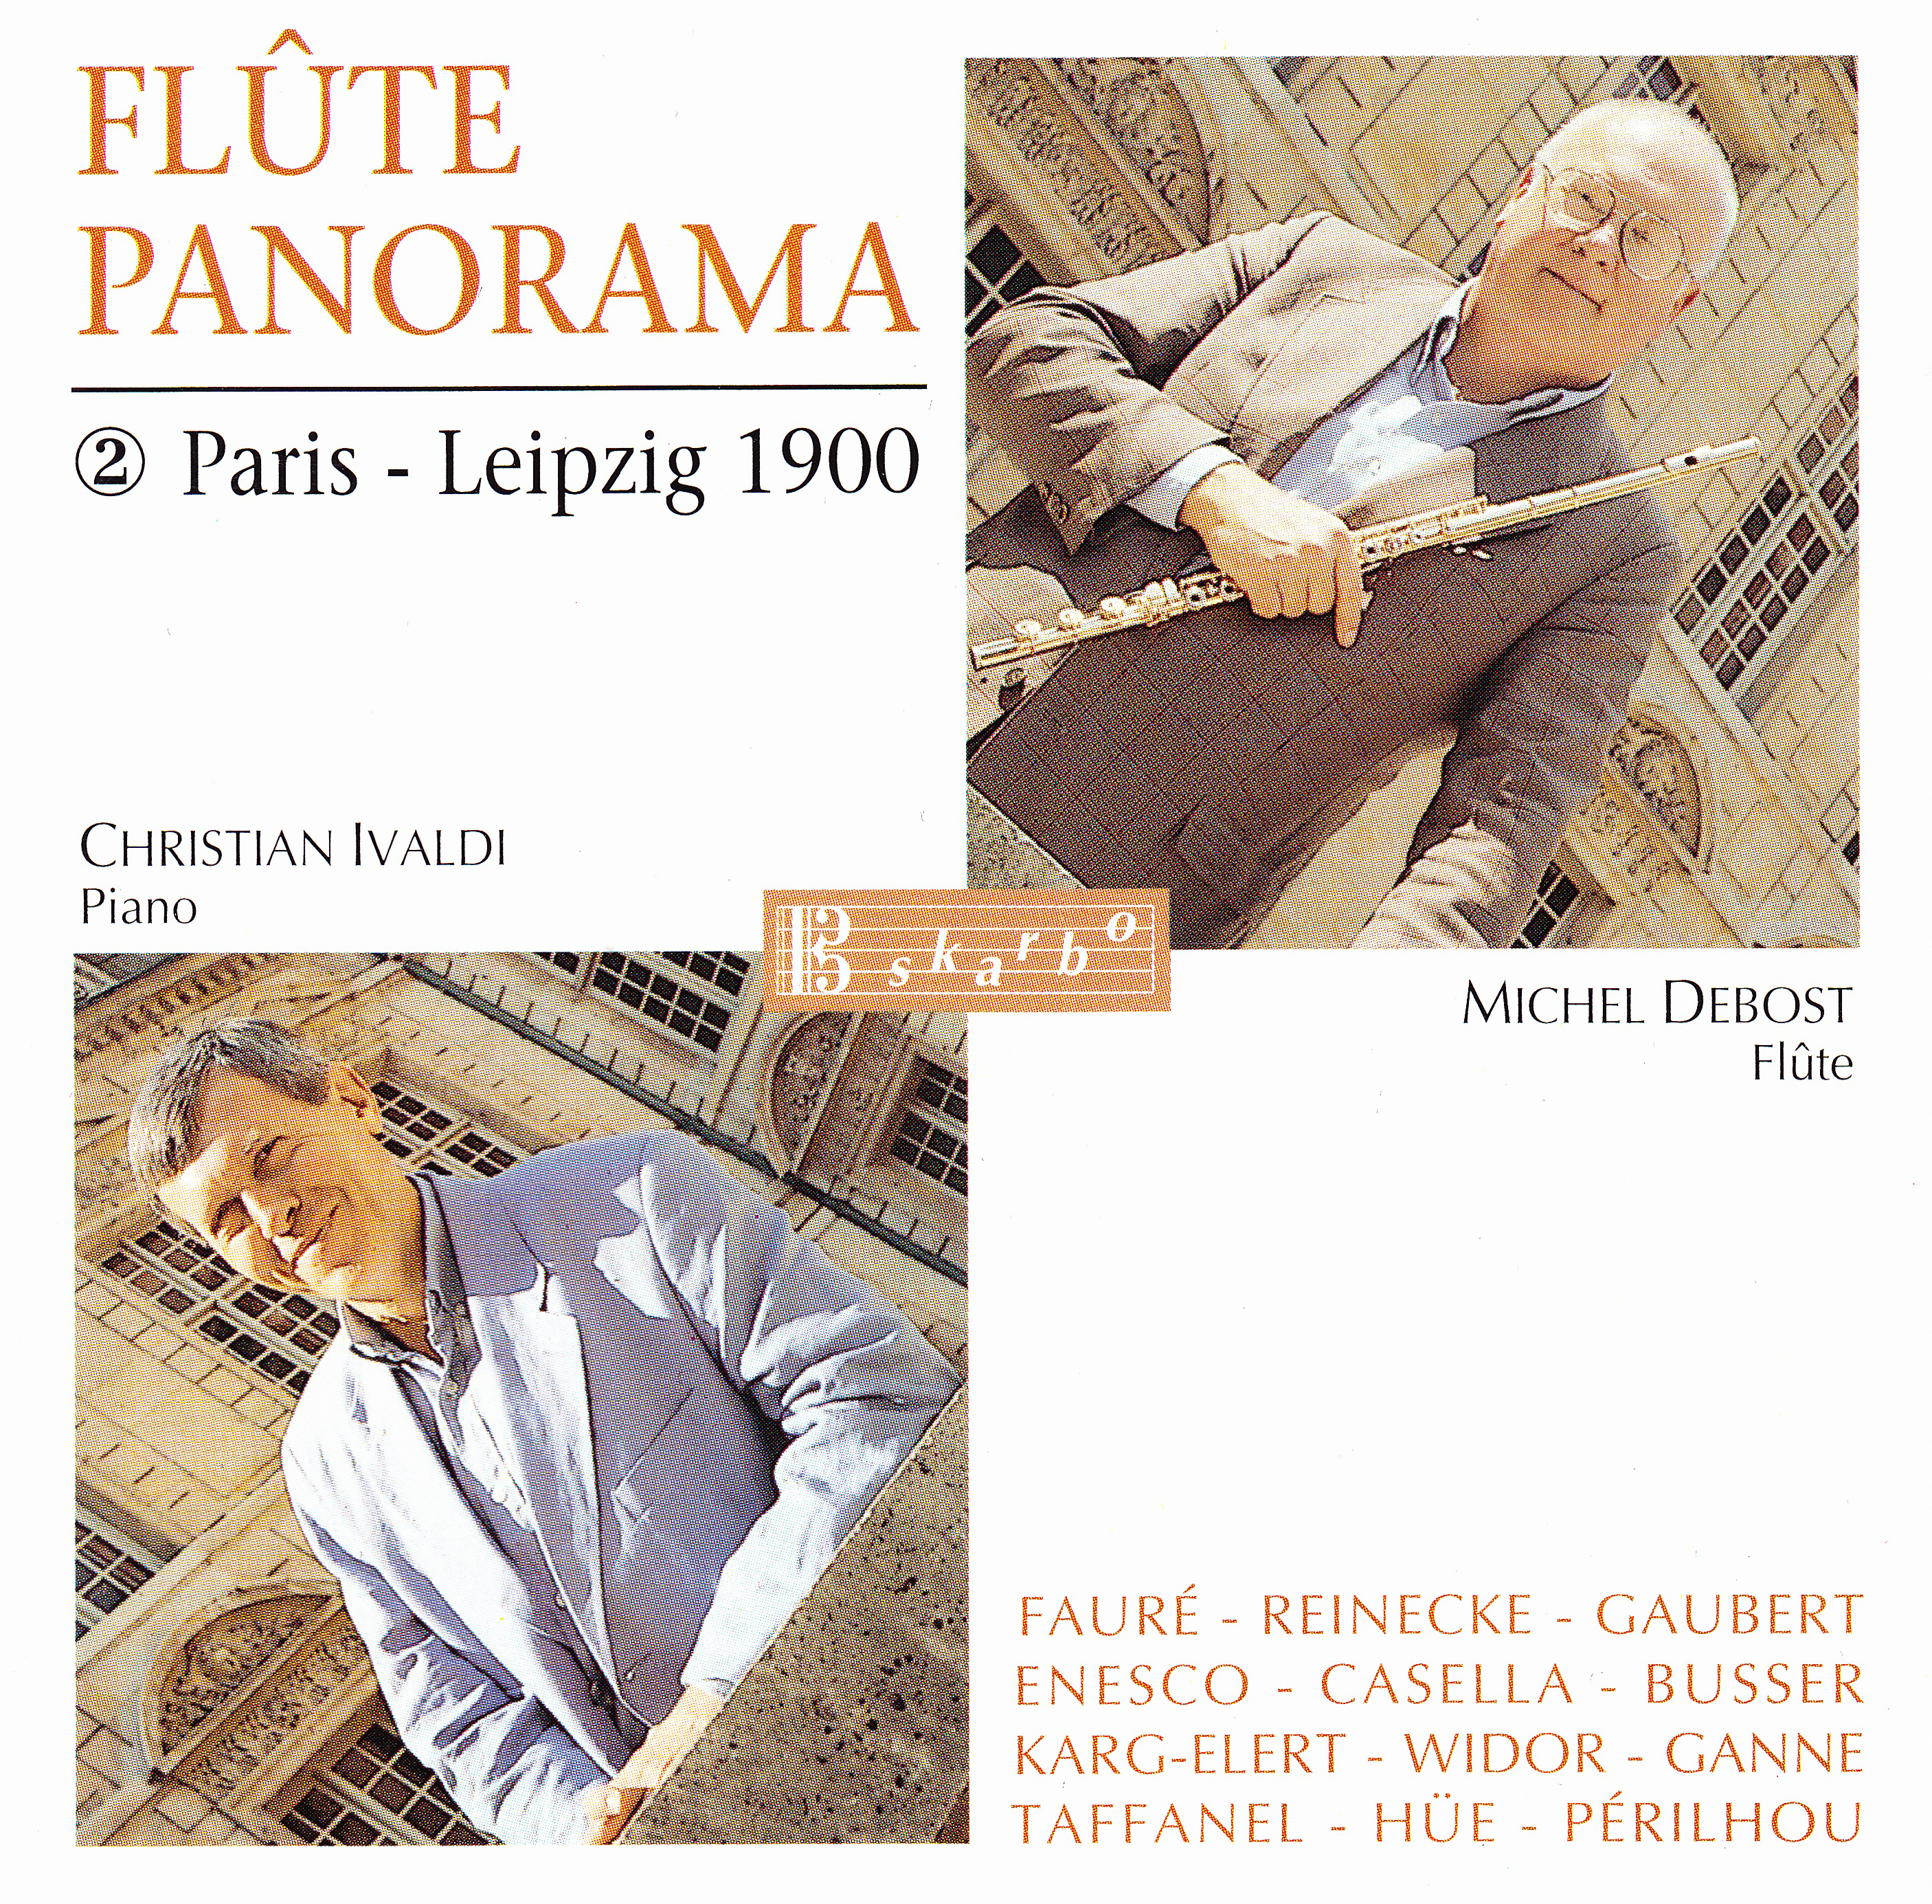 Fantaisie, Op. 79, Fantaisie, Op. 79: I. Andantino - II. Allegro [version for flute and piano]